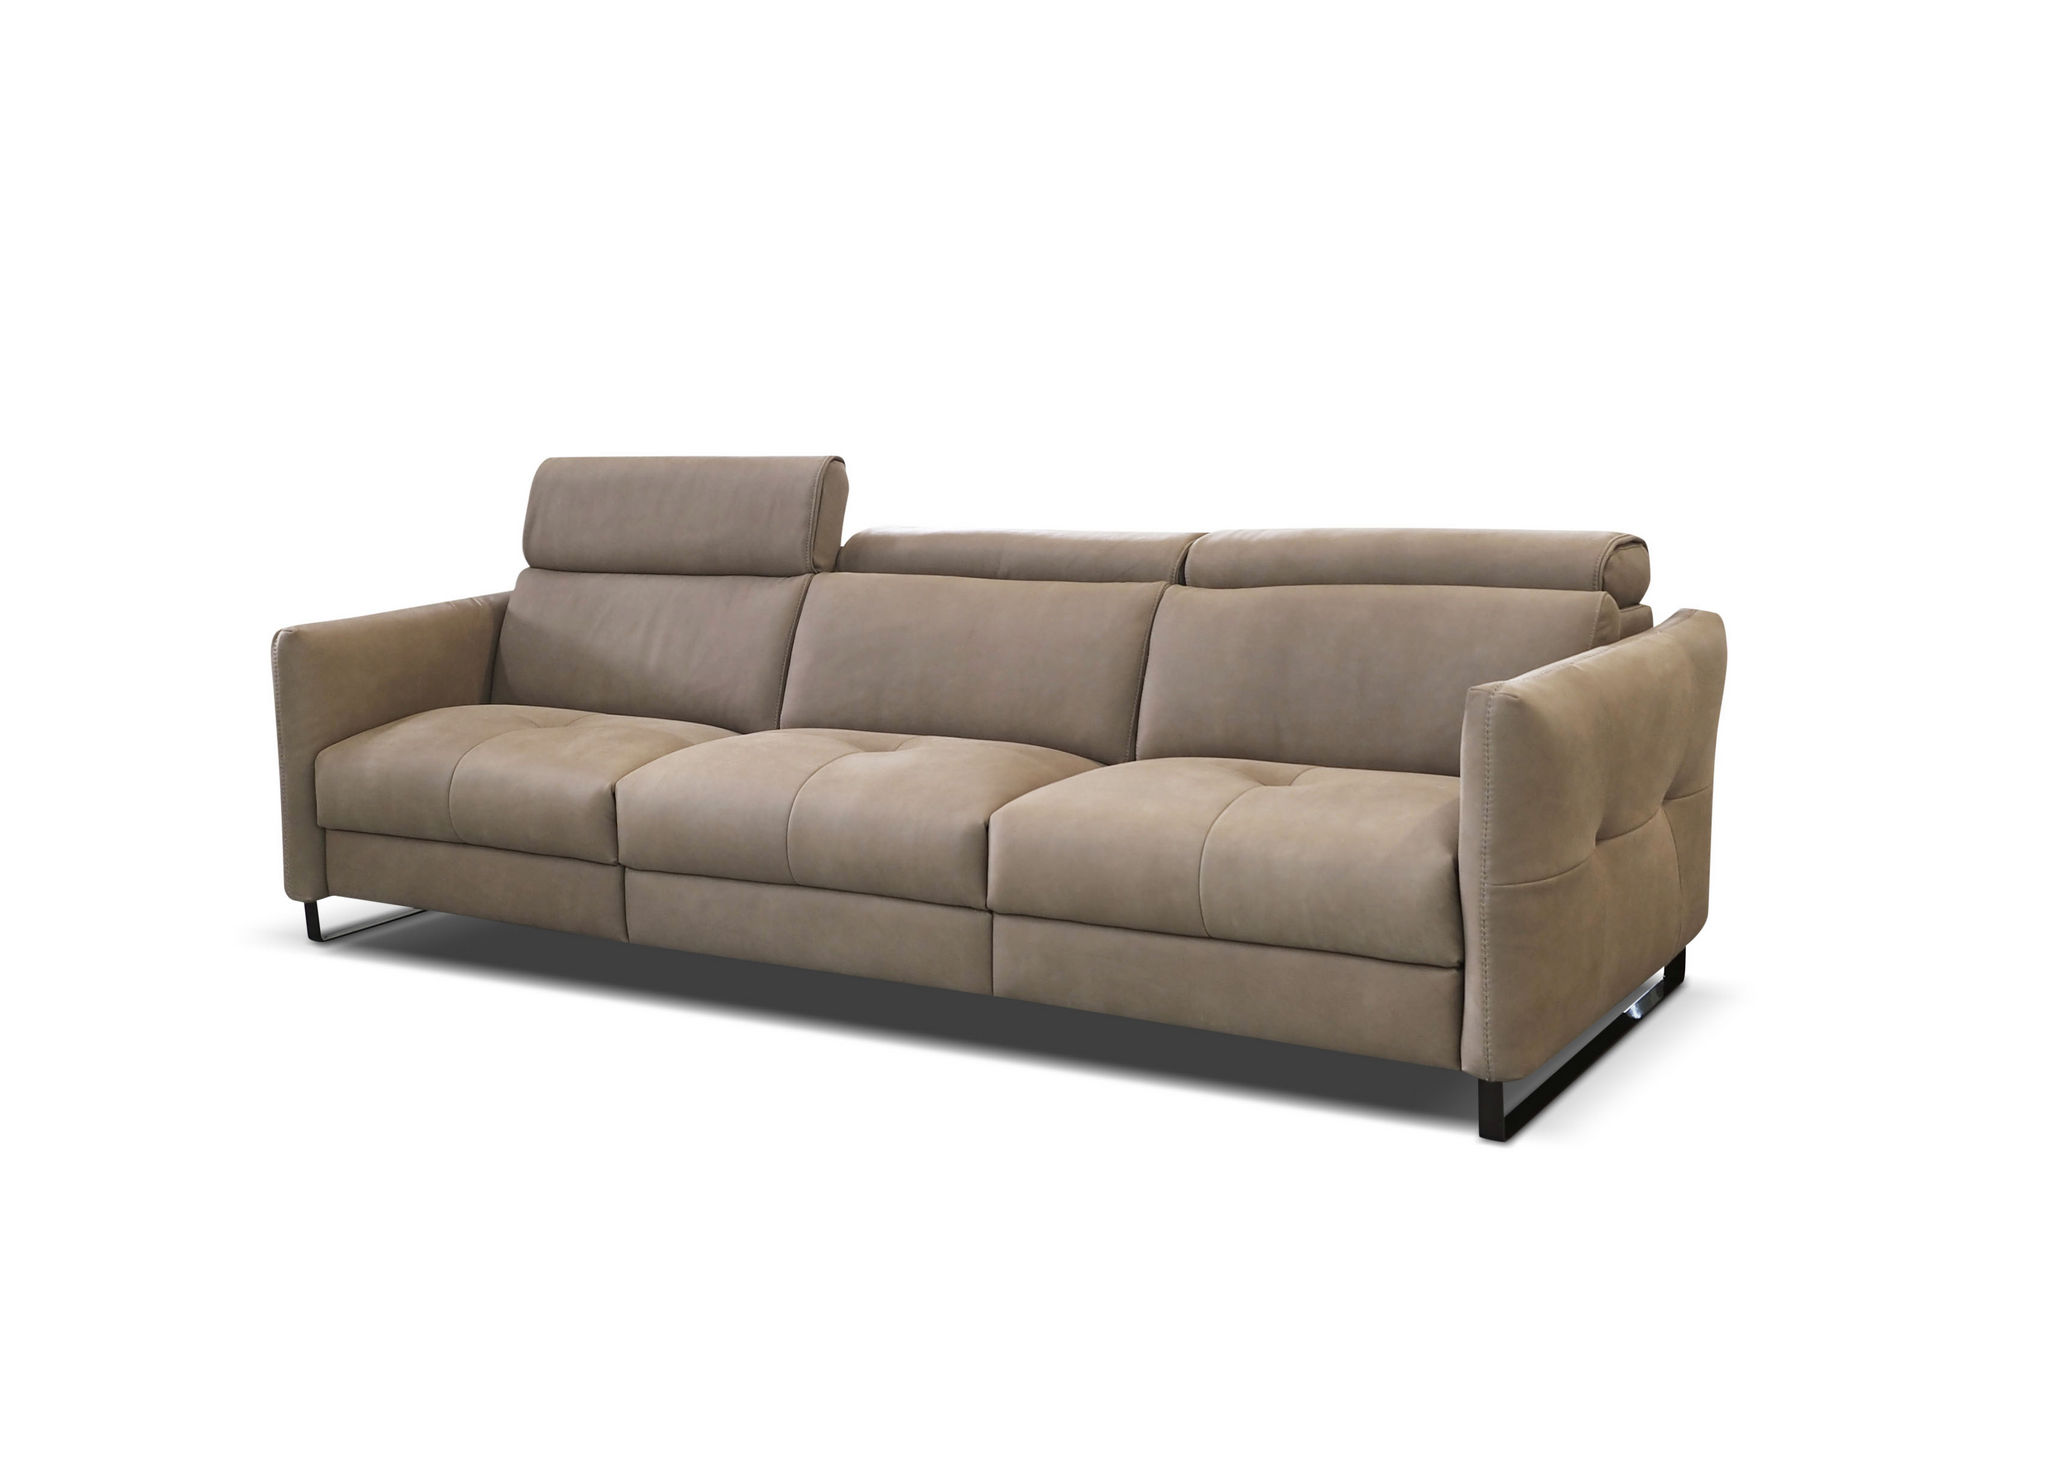 Sensational Sofas Bracci Floridian Furniture Gmtry Best Dining Table And Chair Ideas Images Gmtryco